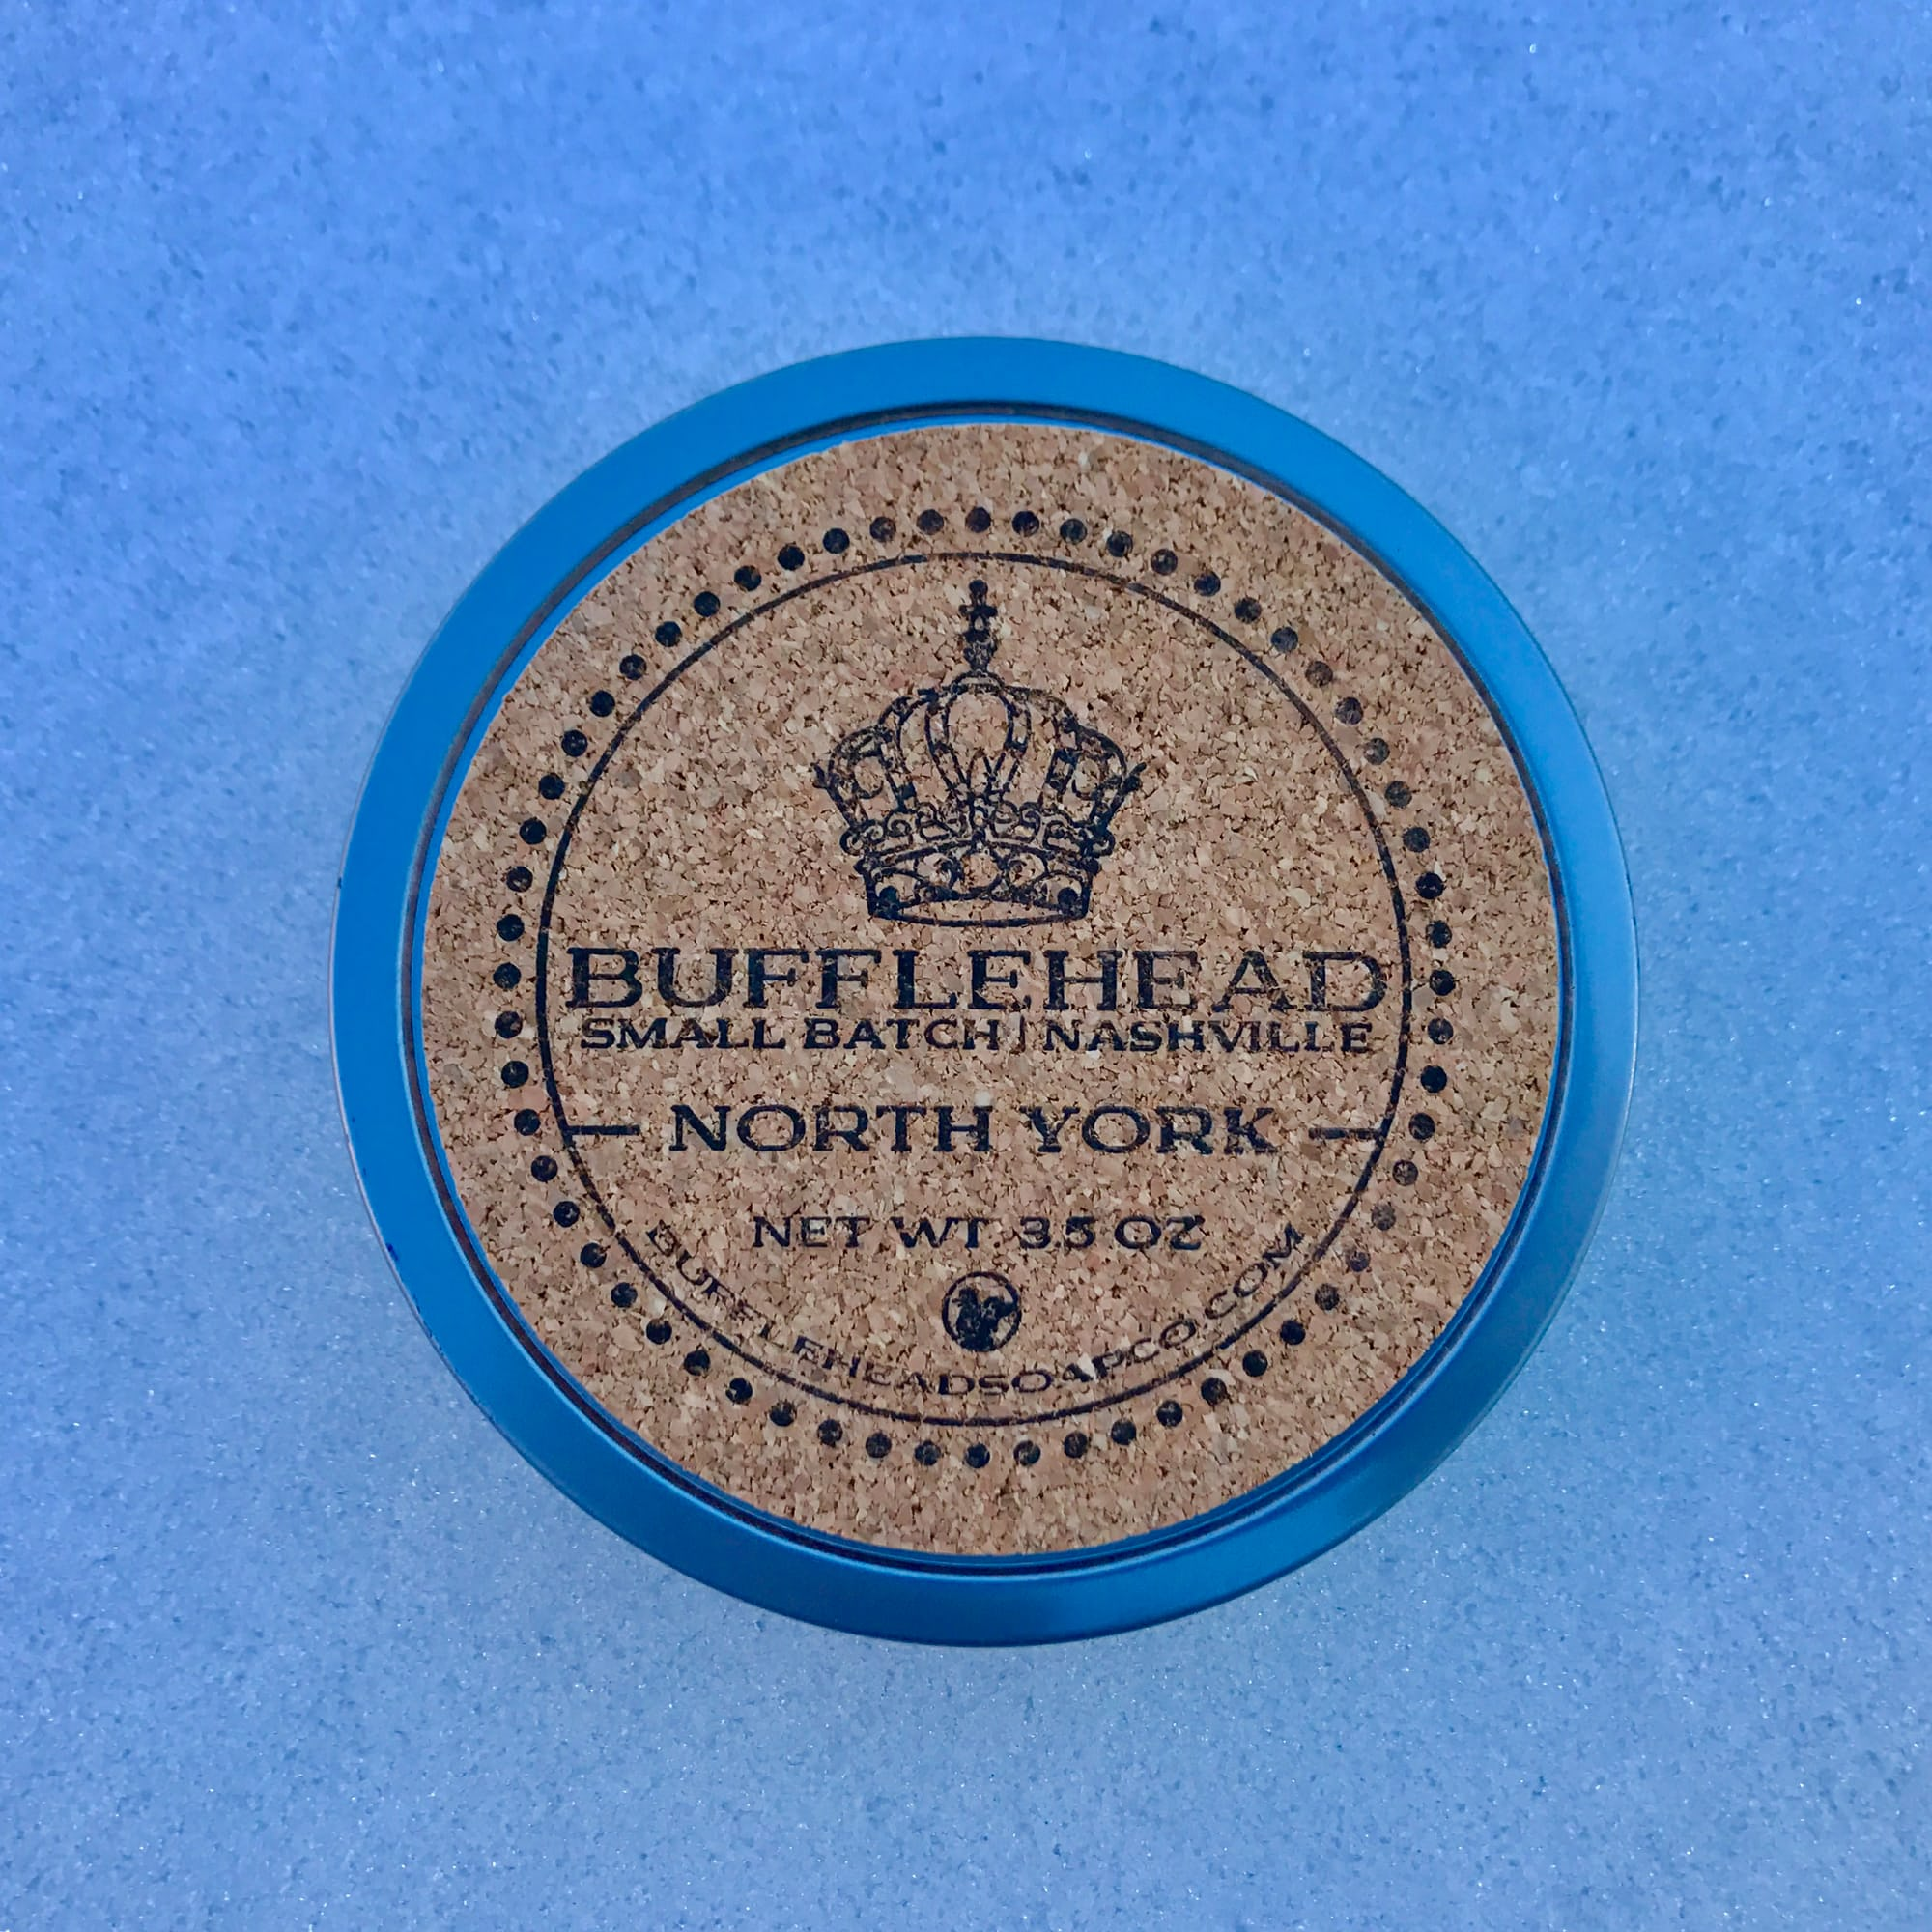 Bufflehead Soap Co. - North York - Soap image